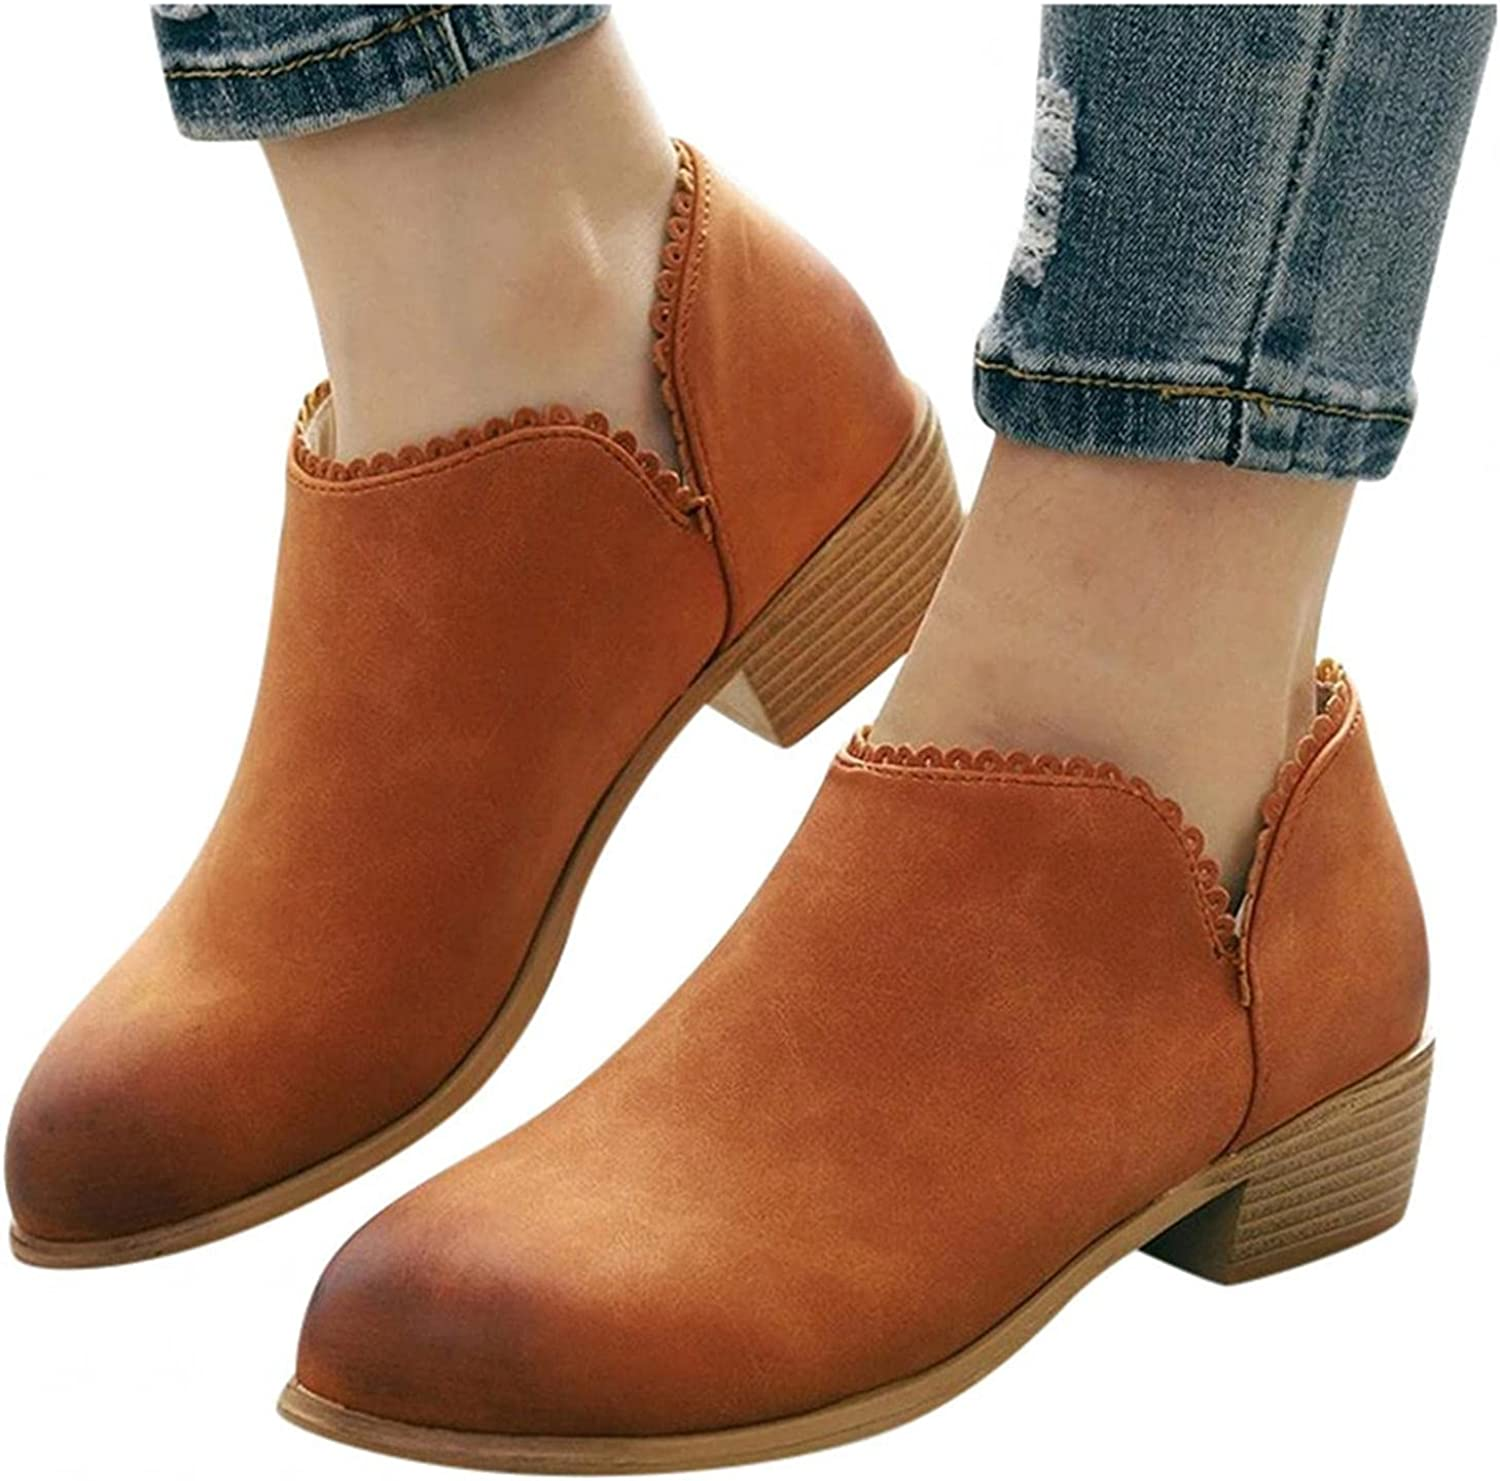 Niceast Boots for Women Breathable Flat Heeled Short Boots Retro Slip-on Cowgirl Boots Autumn Casual Single Shoes